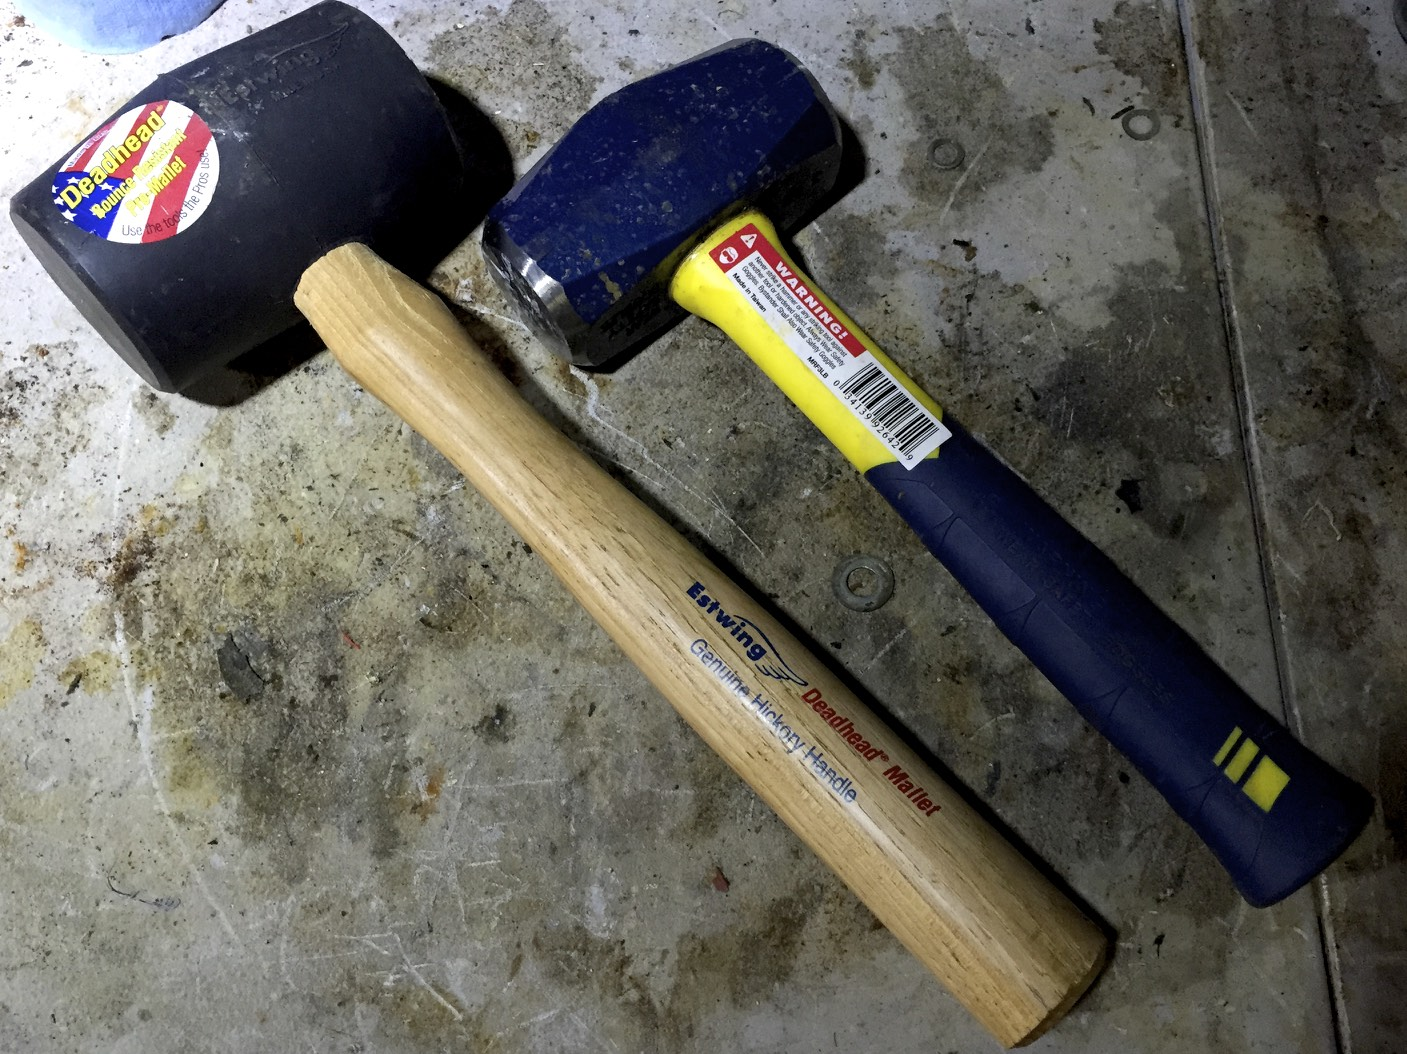 A rubber mallet (left) and a four pound hammer (right).